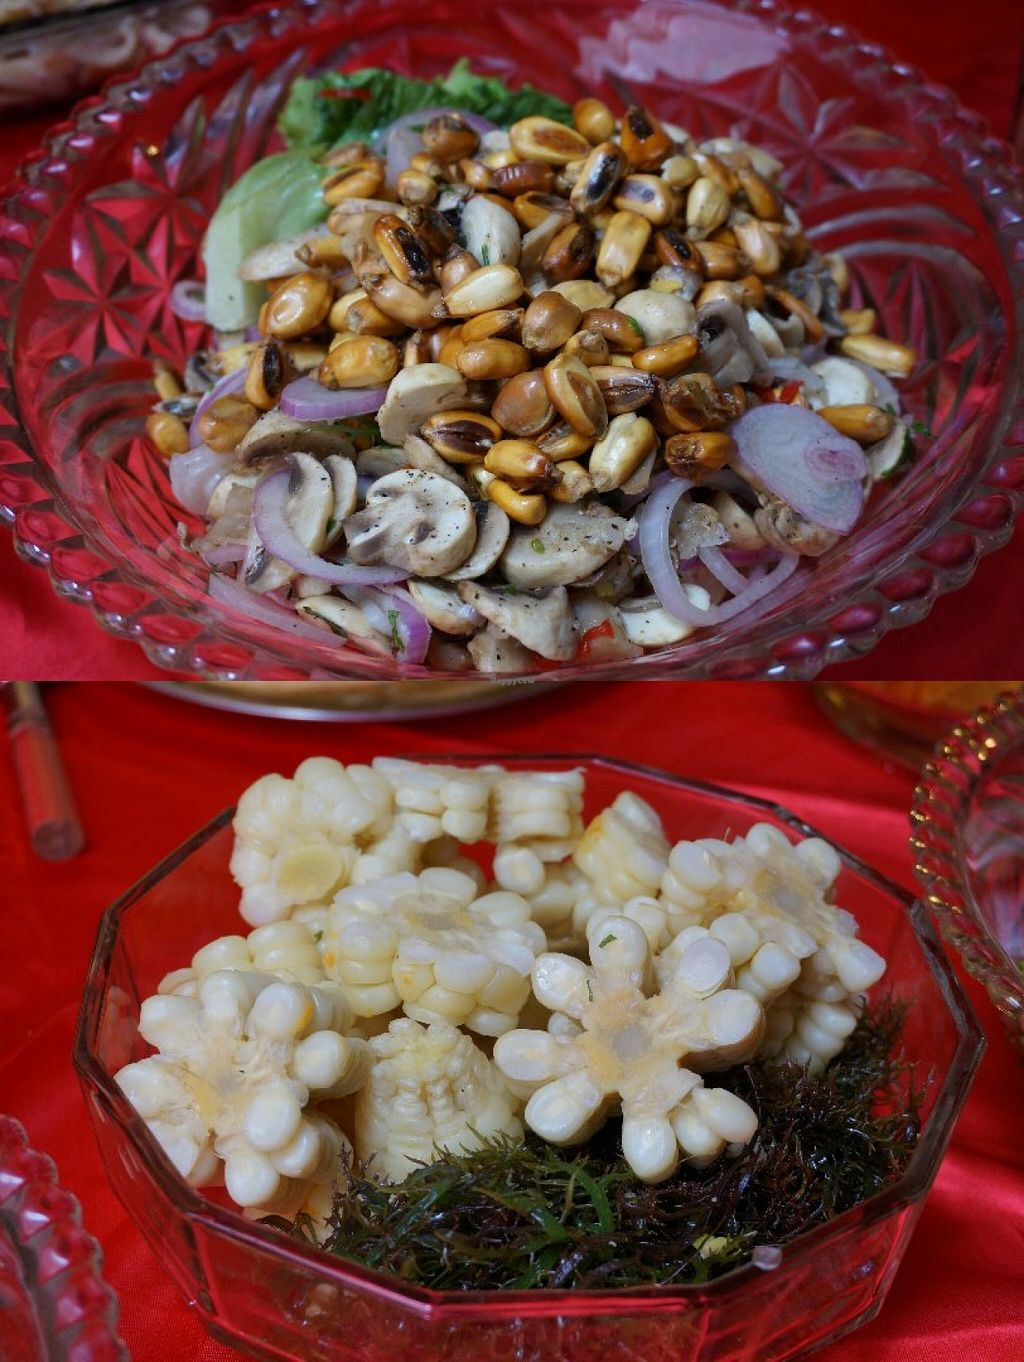 """Photo of Pacchamama  by <a href=""""/members/profile/Ricardo"""">Ricardo</a> <br/>Mushroom Ceviche (catered) <br/> June 18, 2016  - <a href='/contact/abuse/image/41619/154585'>Report</a>"""